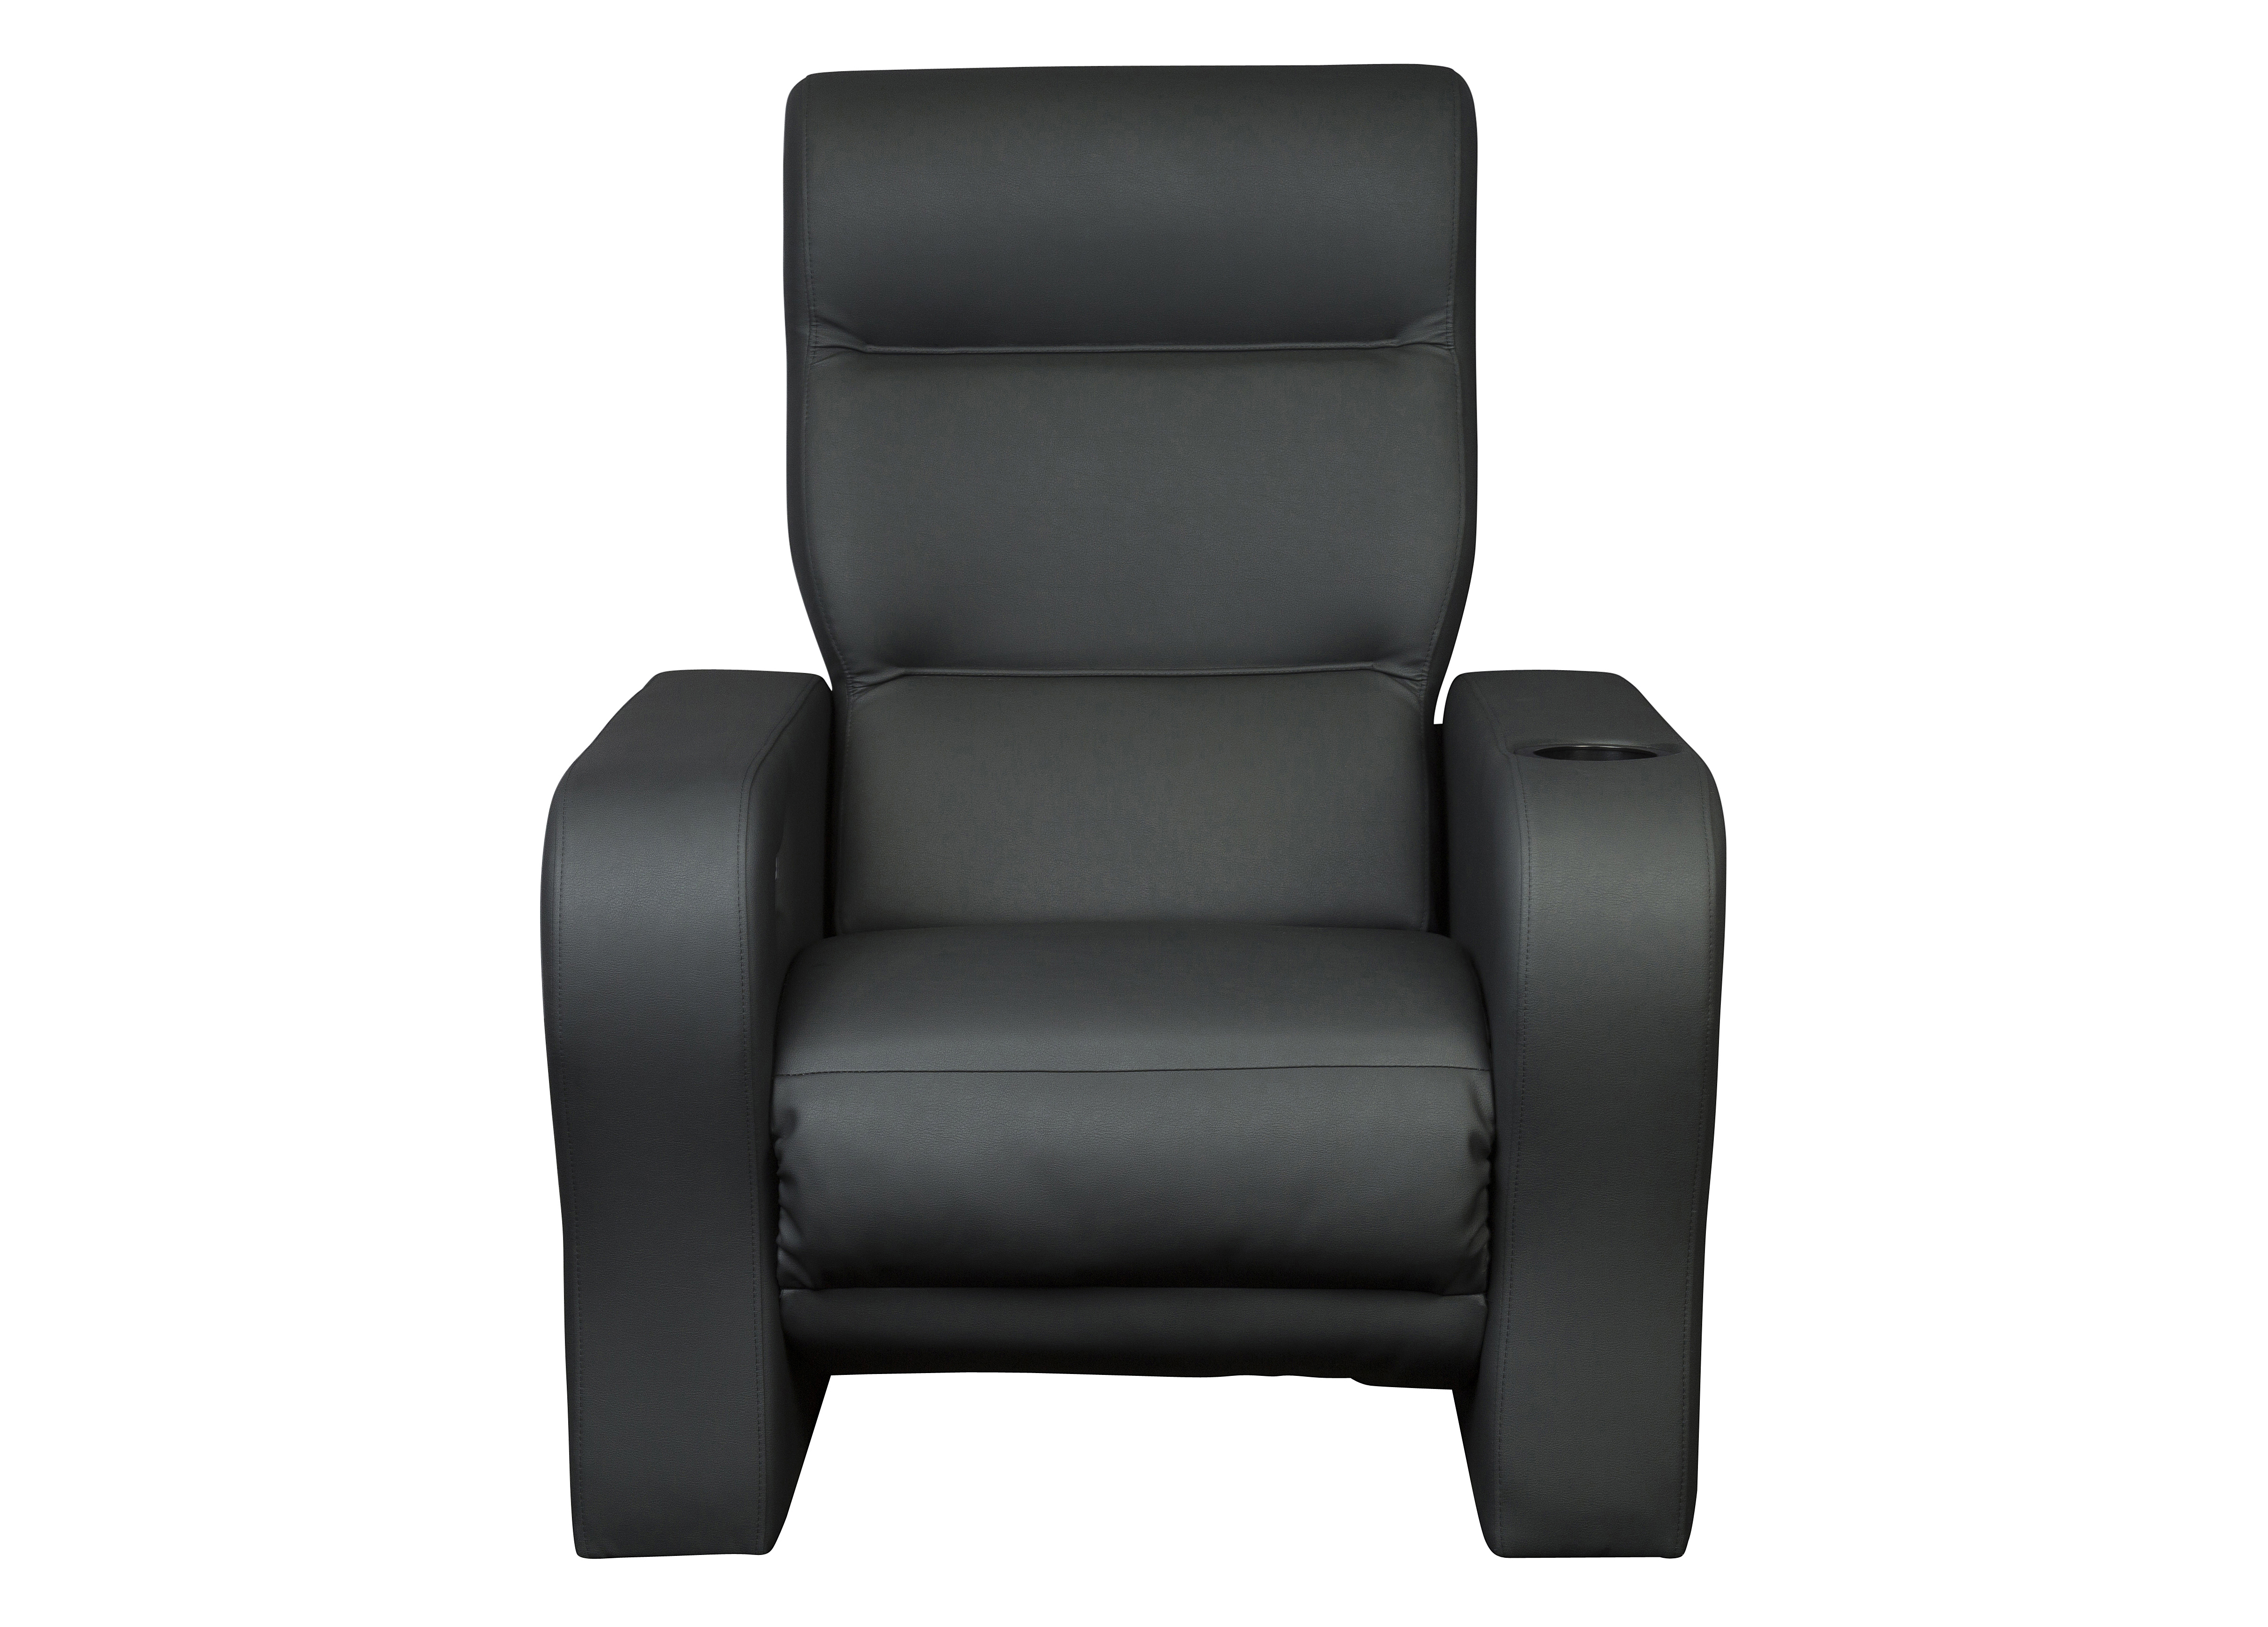 Wondrous Prince Recliner Infinity Seating Evergreenethics Interior Chair Design Evergreenethicsorg